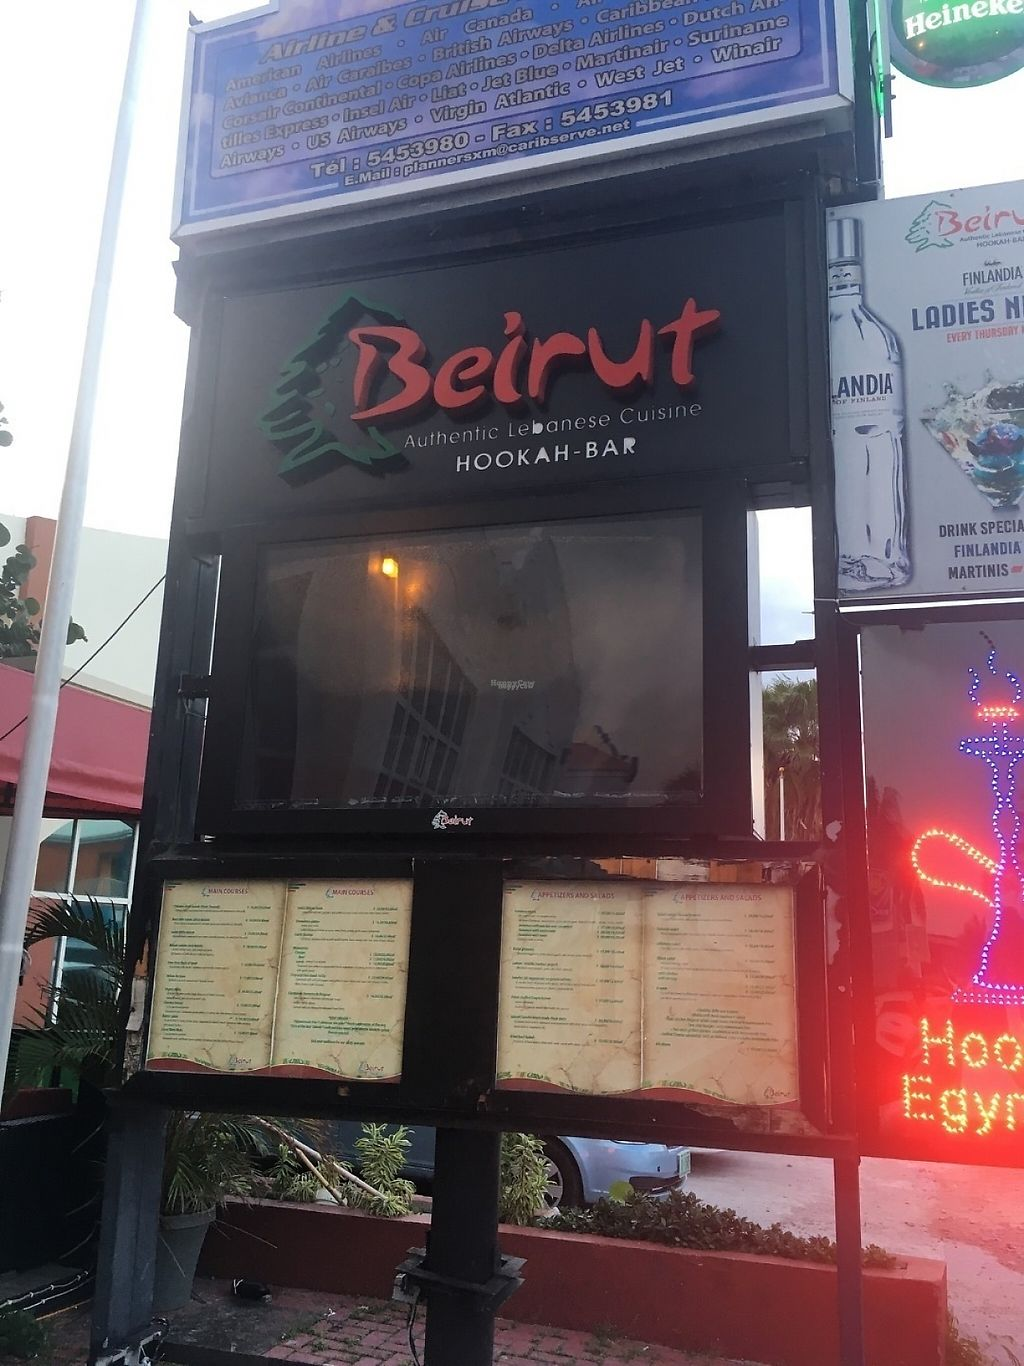 """Photo of Beirut SXM   by <a href=""""/members/profile/veganmom"""">veganmom</a> <br/>From the outside <br/> November 21, 2016  - <a href='/contact/abuse/image/83023/192853'>Report</a>"""